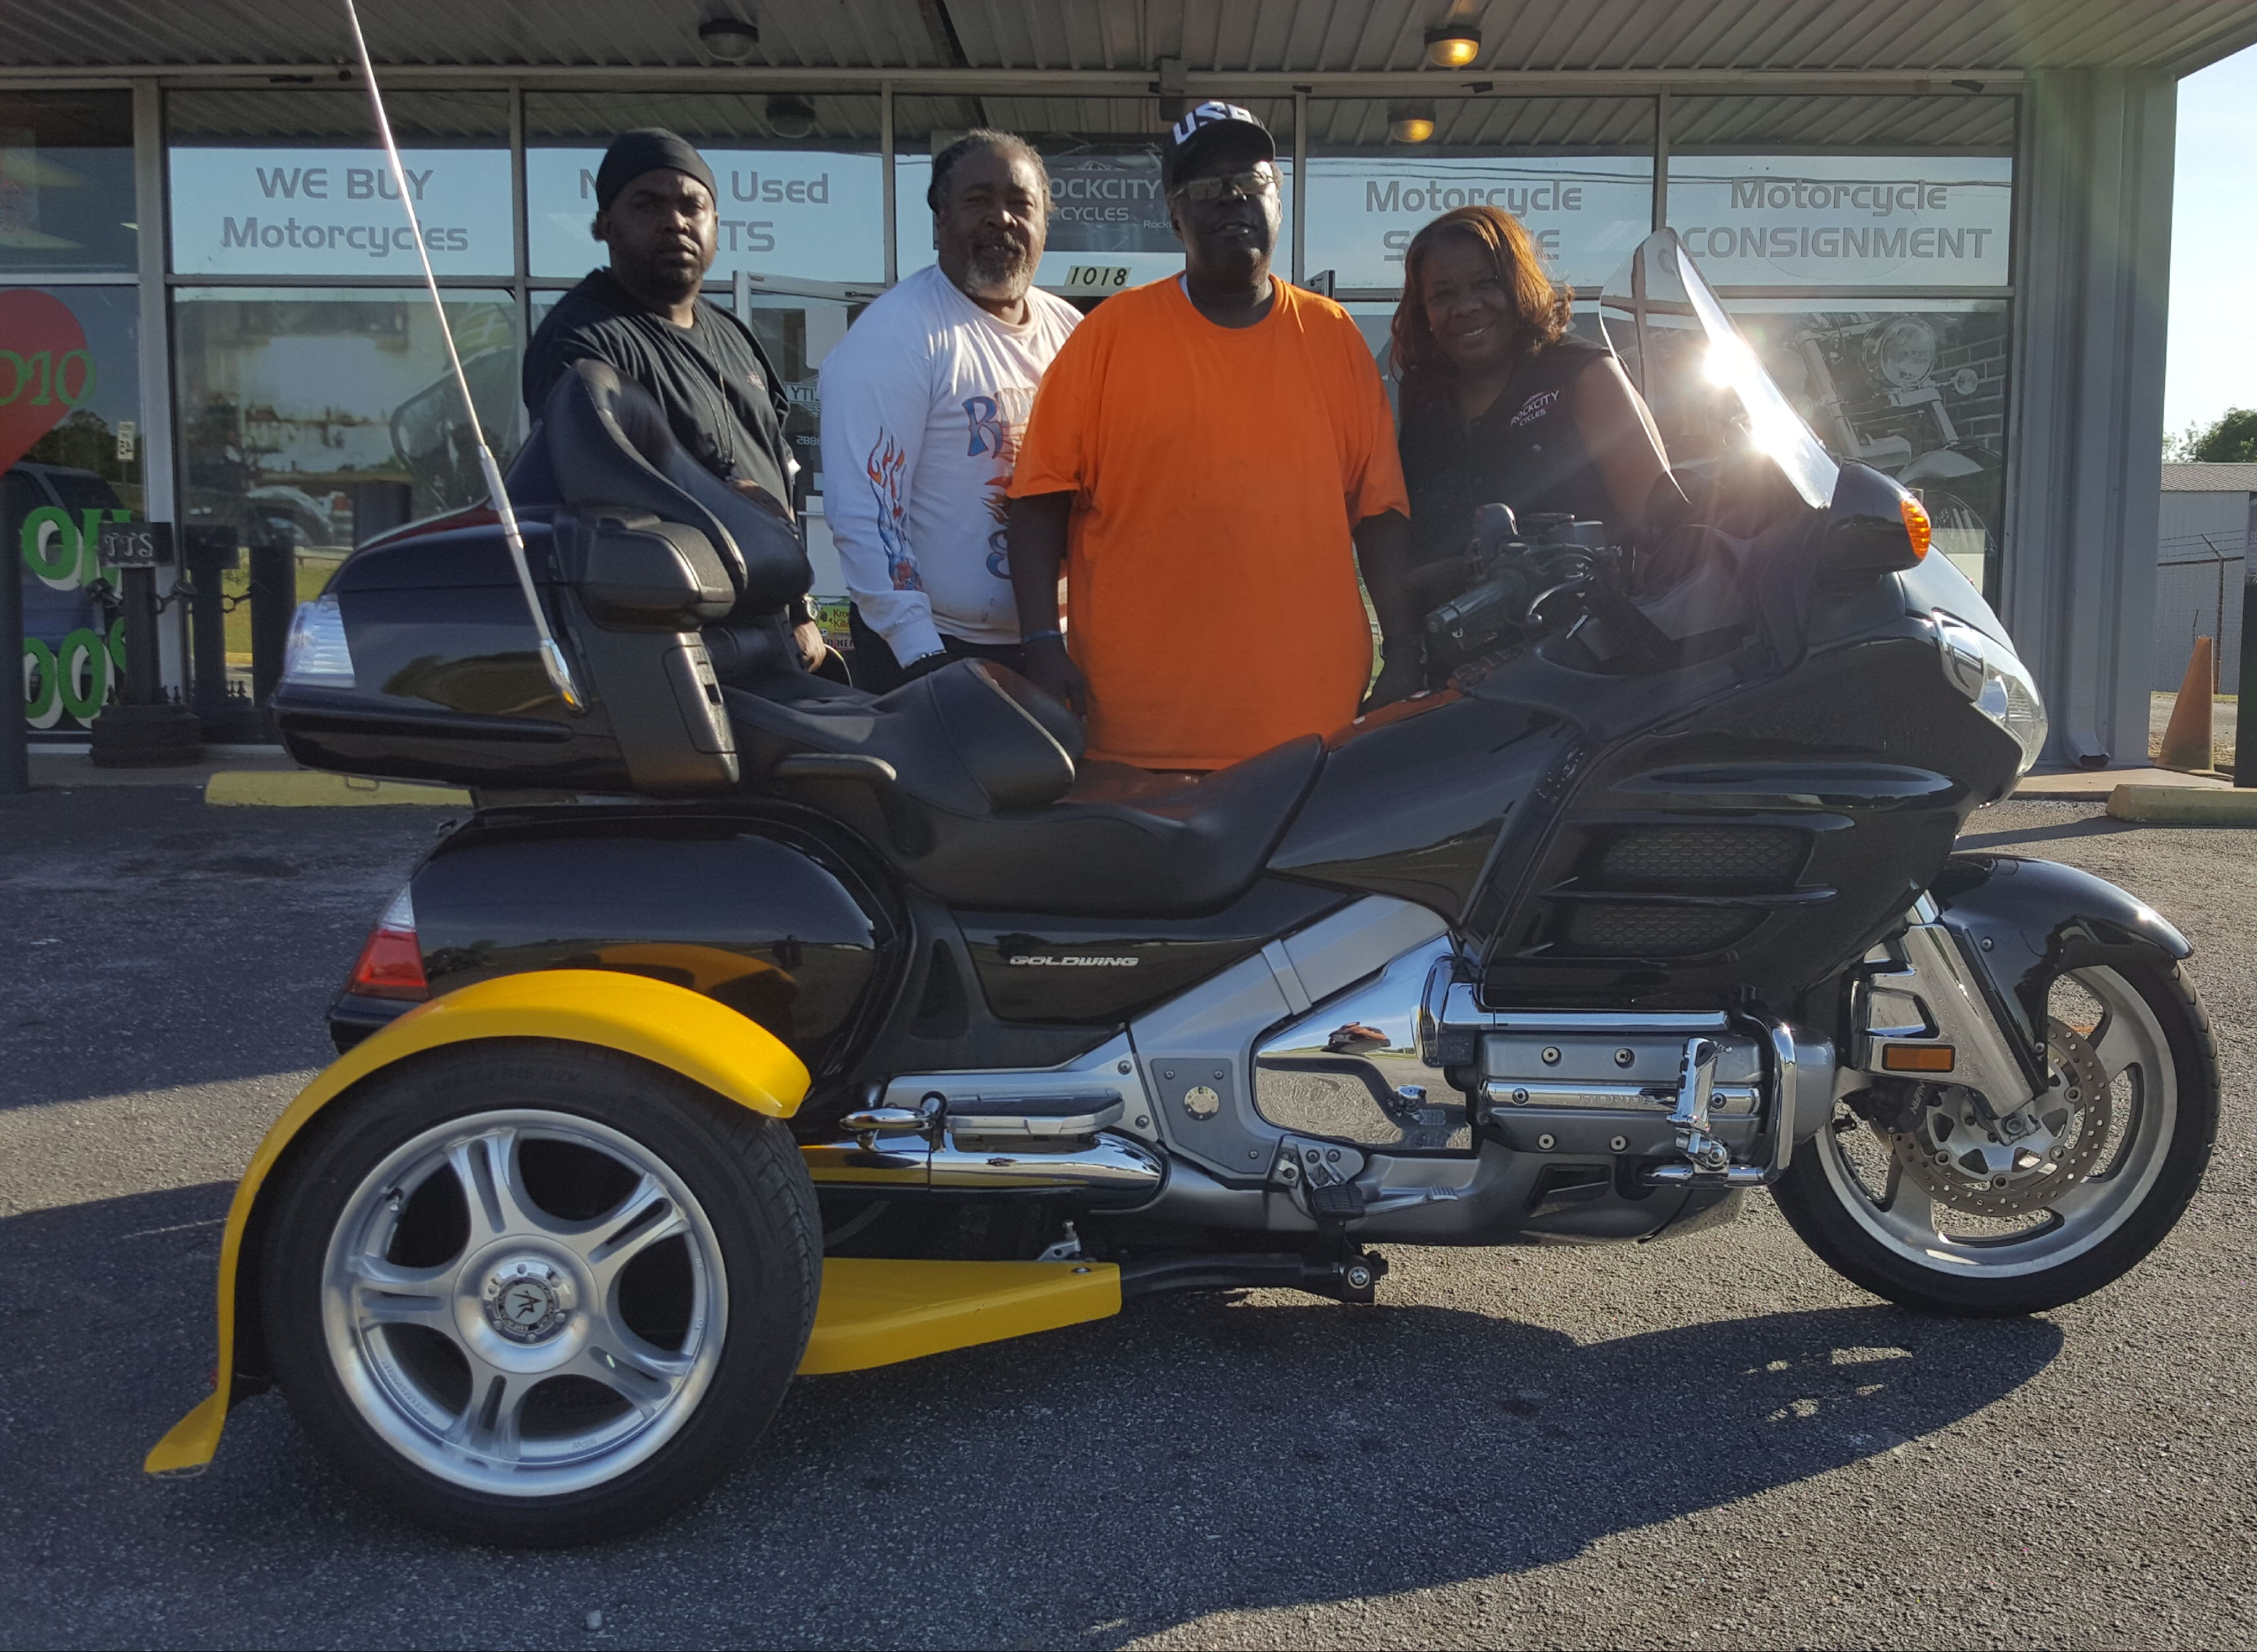 Charles E. with his 2002 Honda Gold Wing Trike